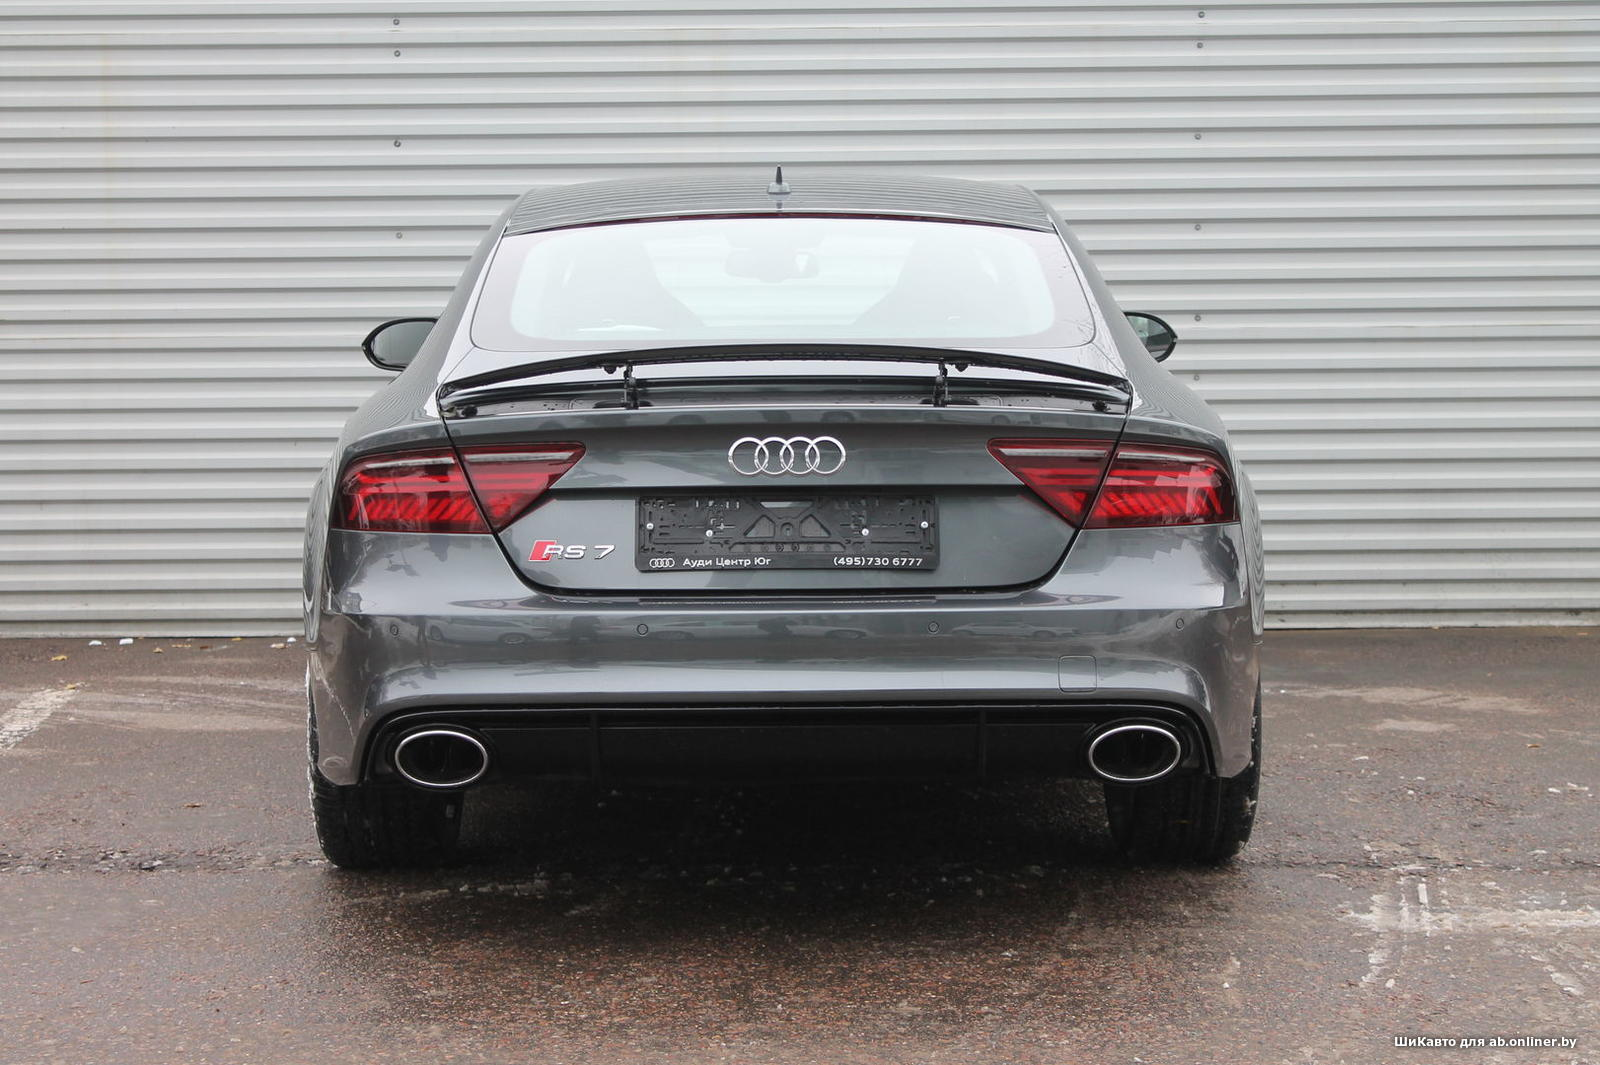 Audi RS7 Performance 4.0 quattro